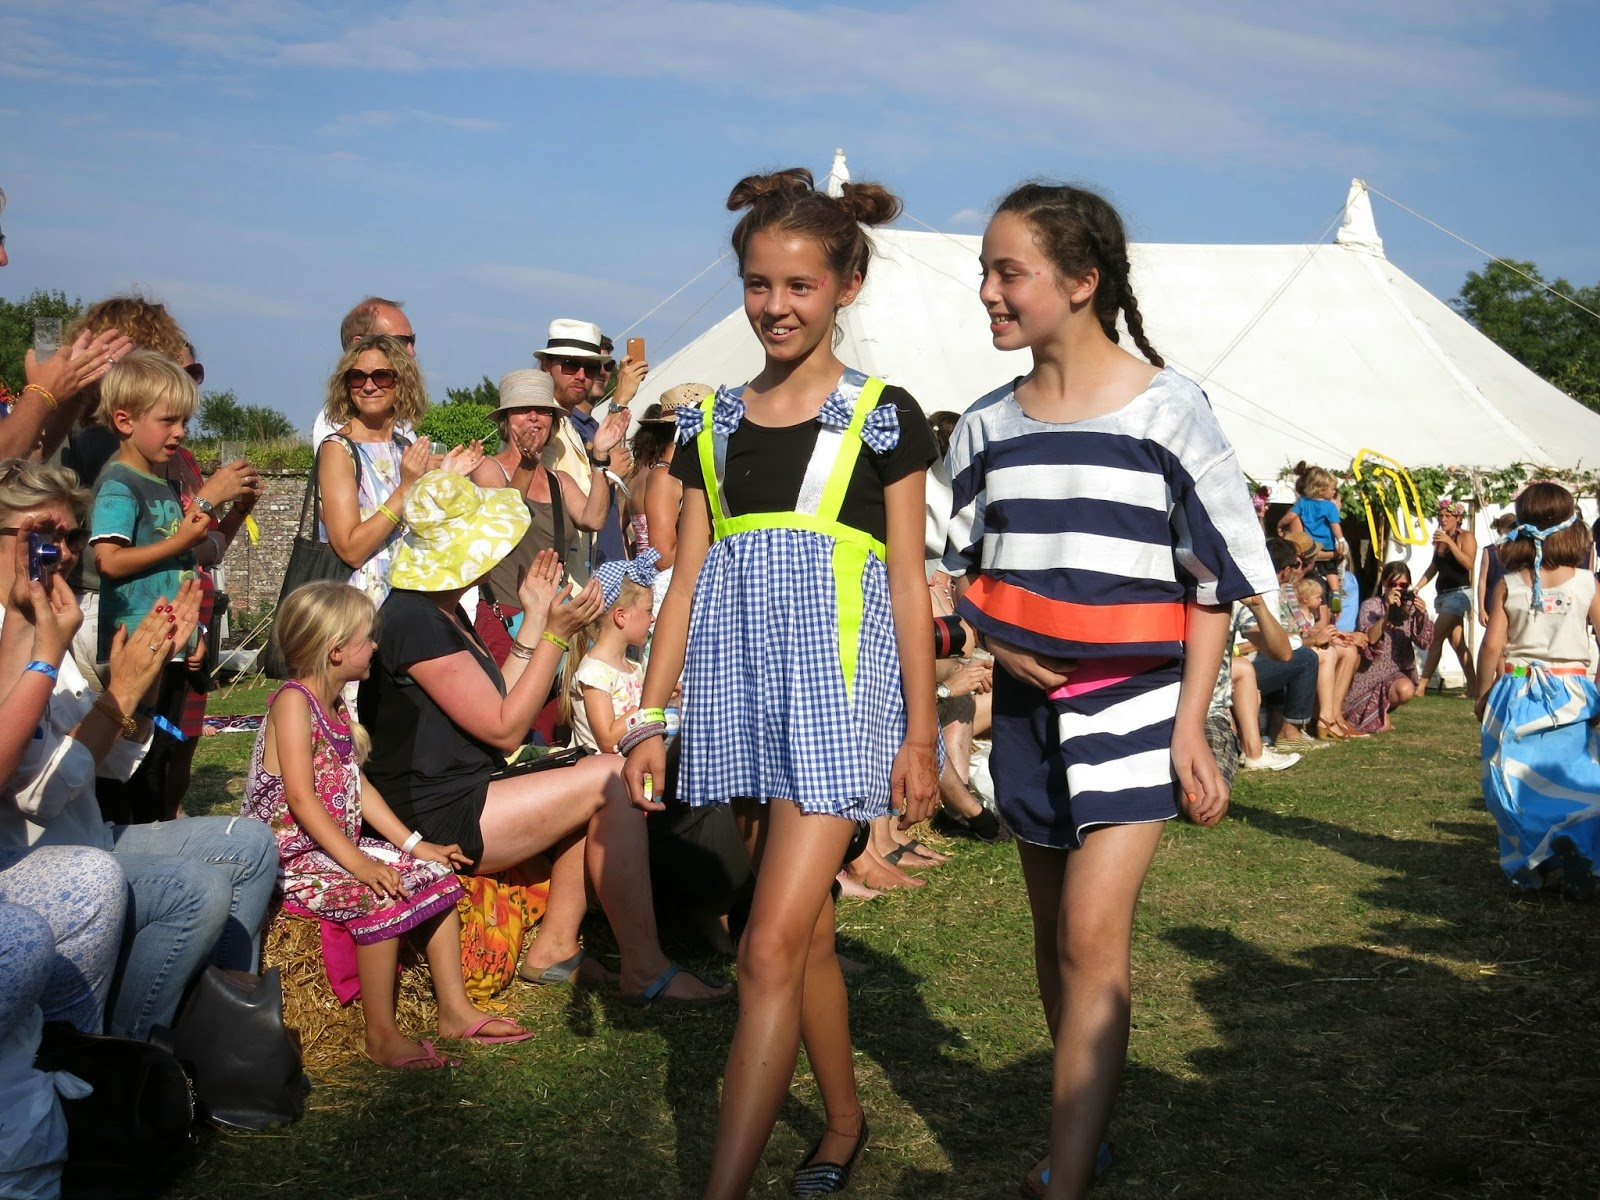 childrens catwalk at port eliot festival 2014